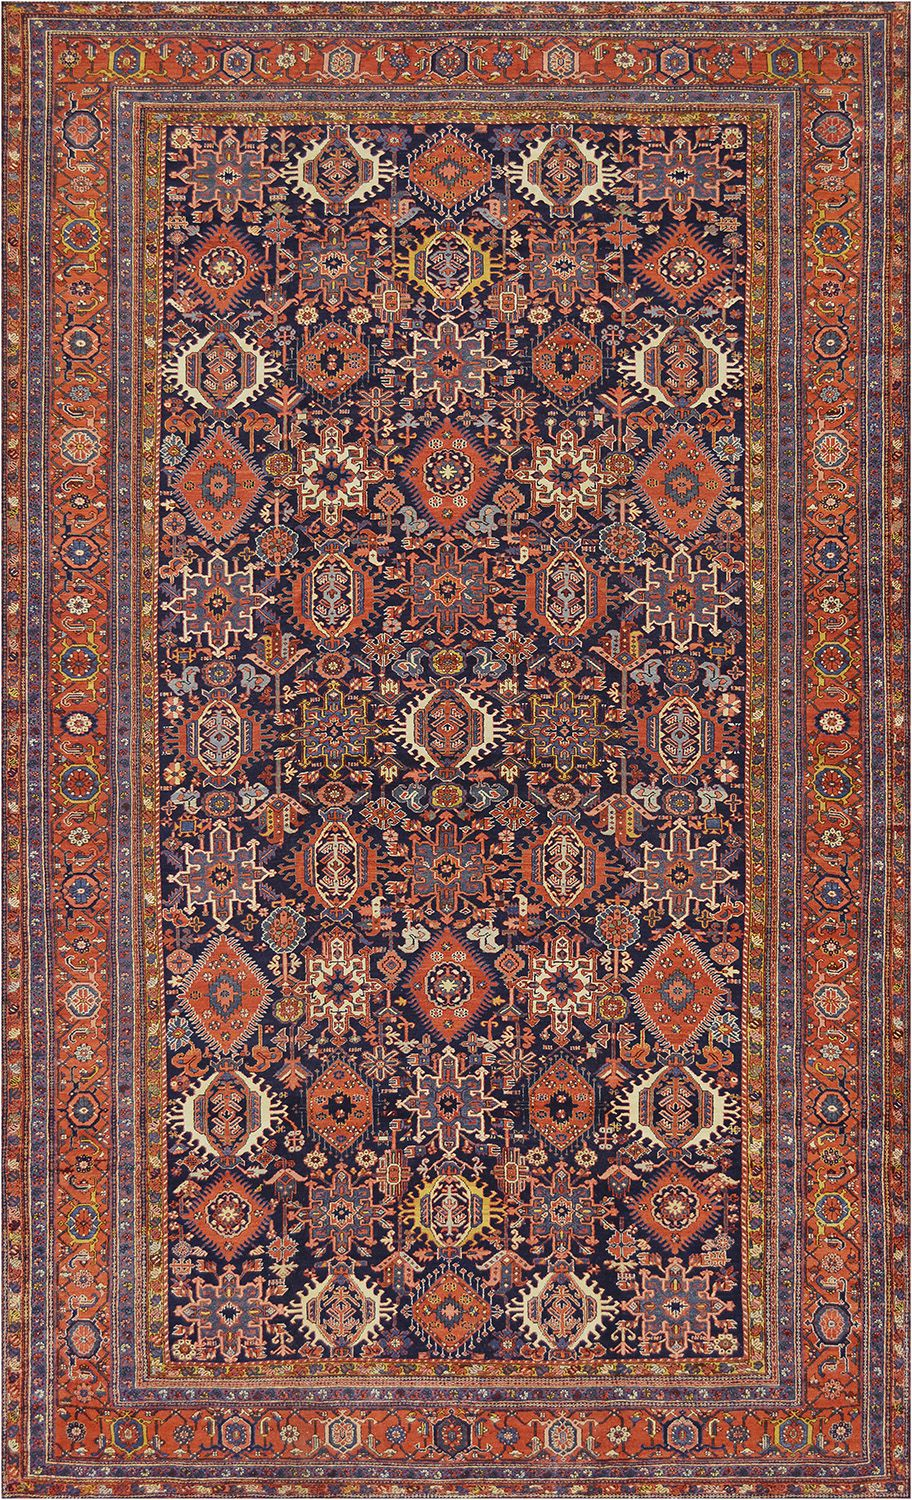 The World S Largest Collection Of Luxury Antique Rugs Vintage Reproduction Rugs And Tapestries The World S Finest Purvey In 2020 Rugs Antique Textiles Antique Rugs